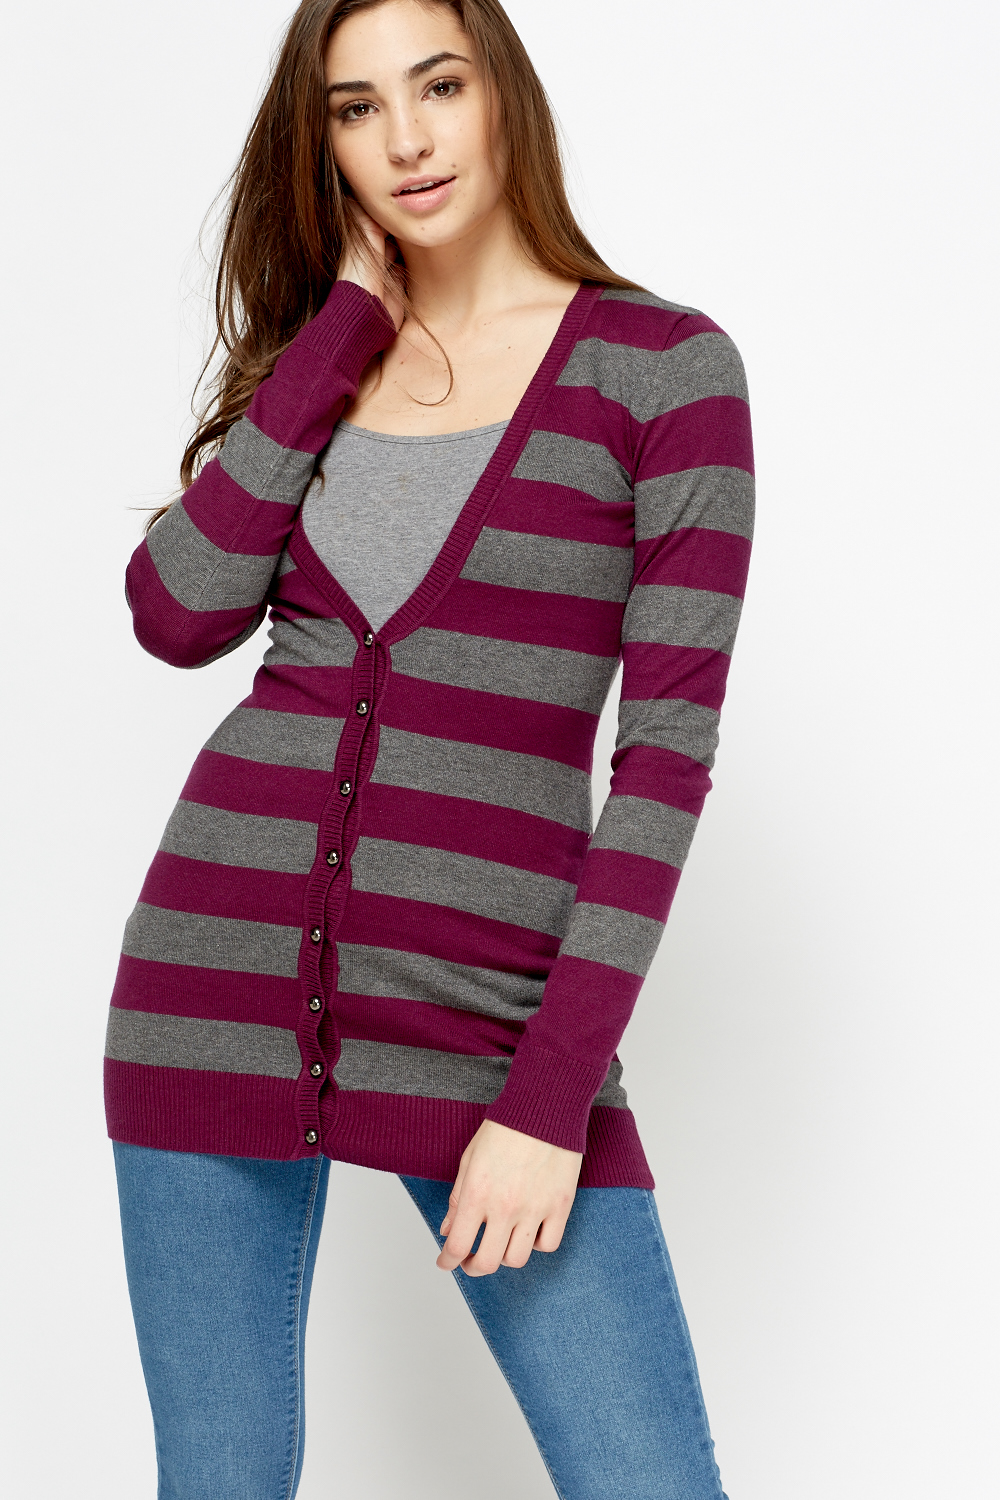 Plunge Stripe Longline Cardigan - Just £5